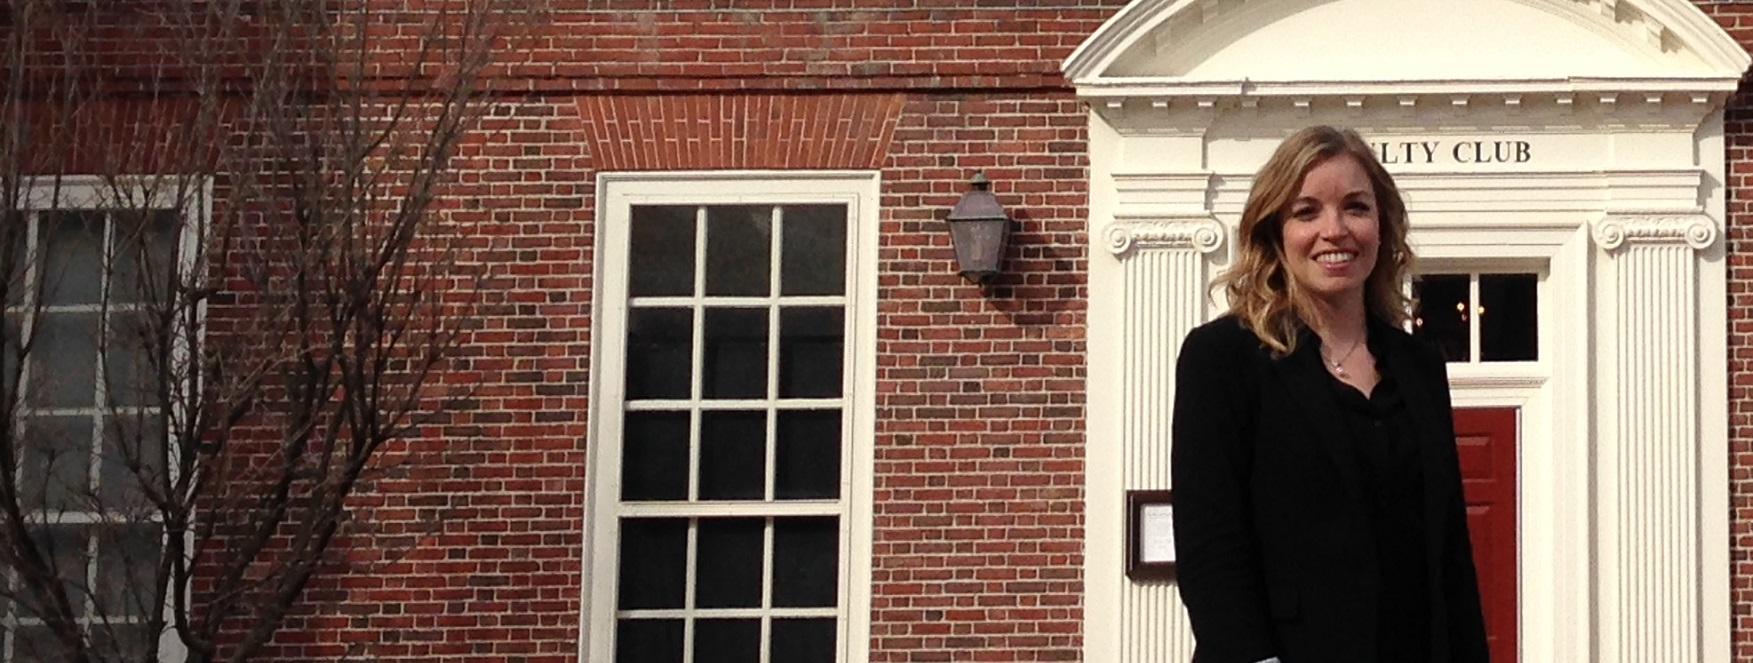 Megan Cotnam-Kappel stands outside the red brick façade of a building at the Harvard Graduate School of Education.